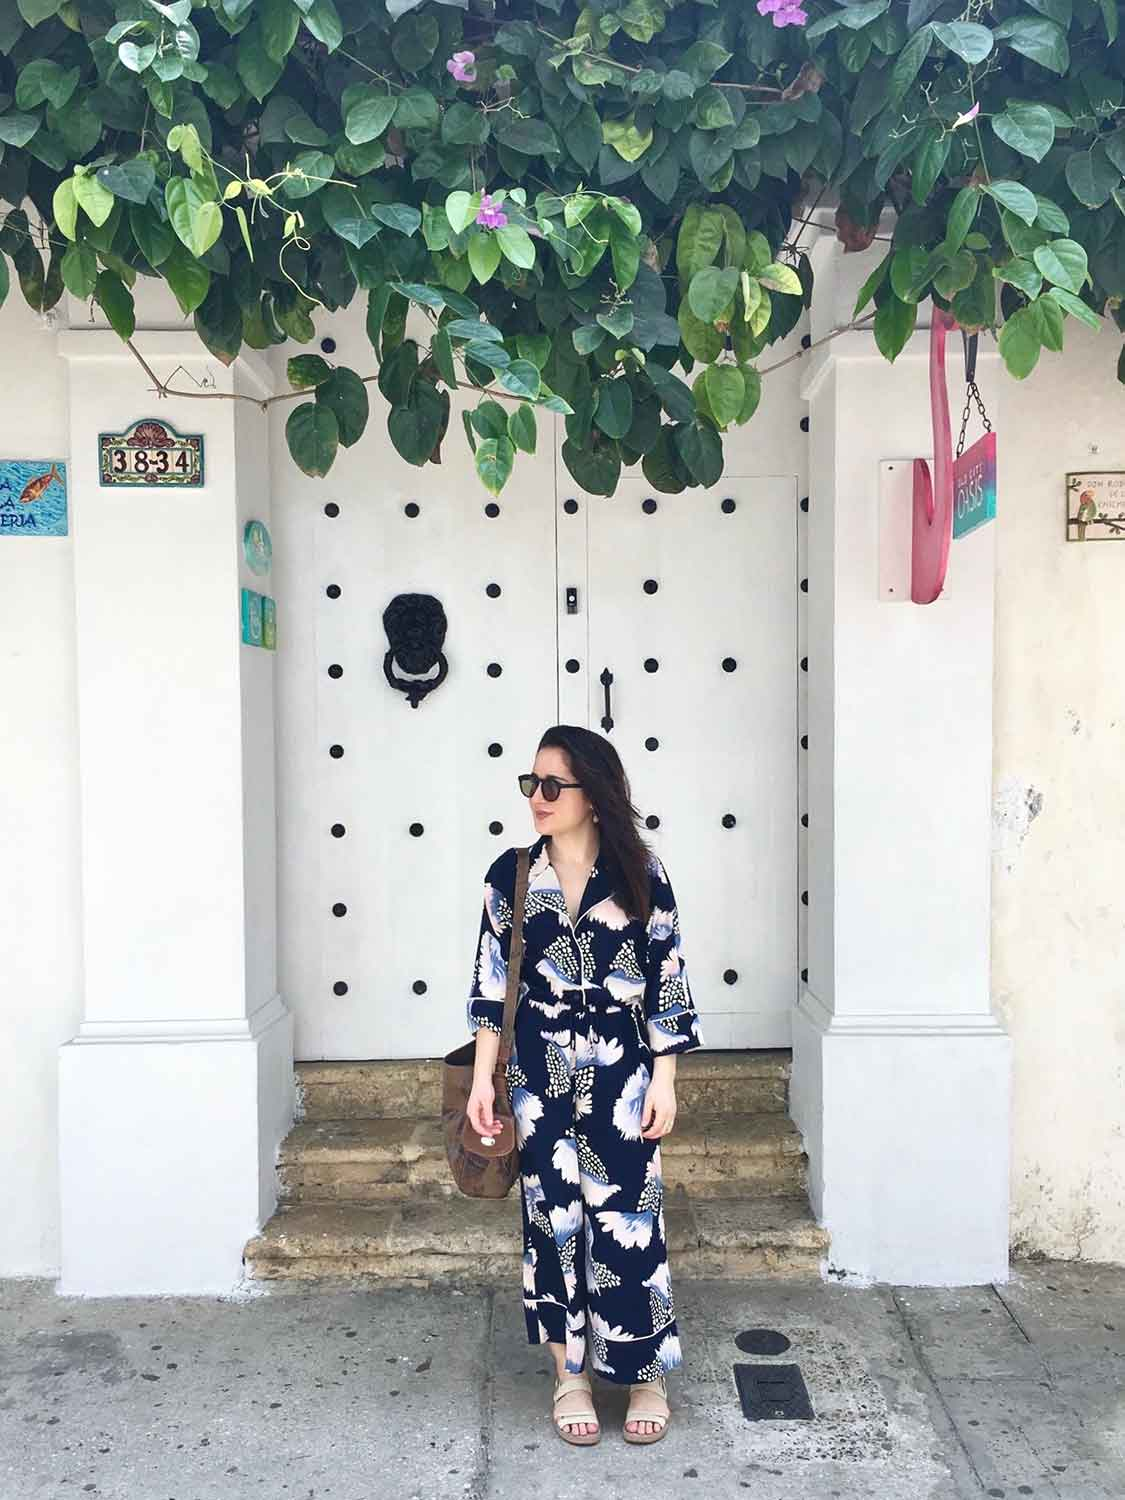 Jumpsuit:  ASOS  // Sunglasses:  SEE Eyewear  // Sandals:  Camper   // Bag: Vintage